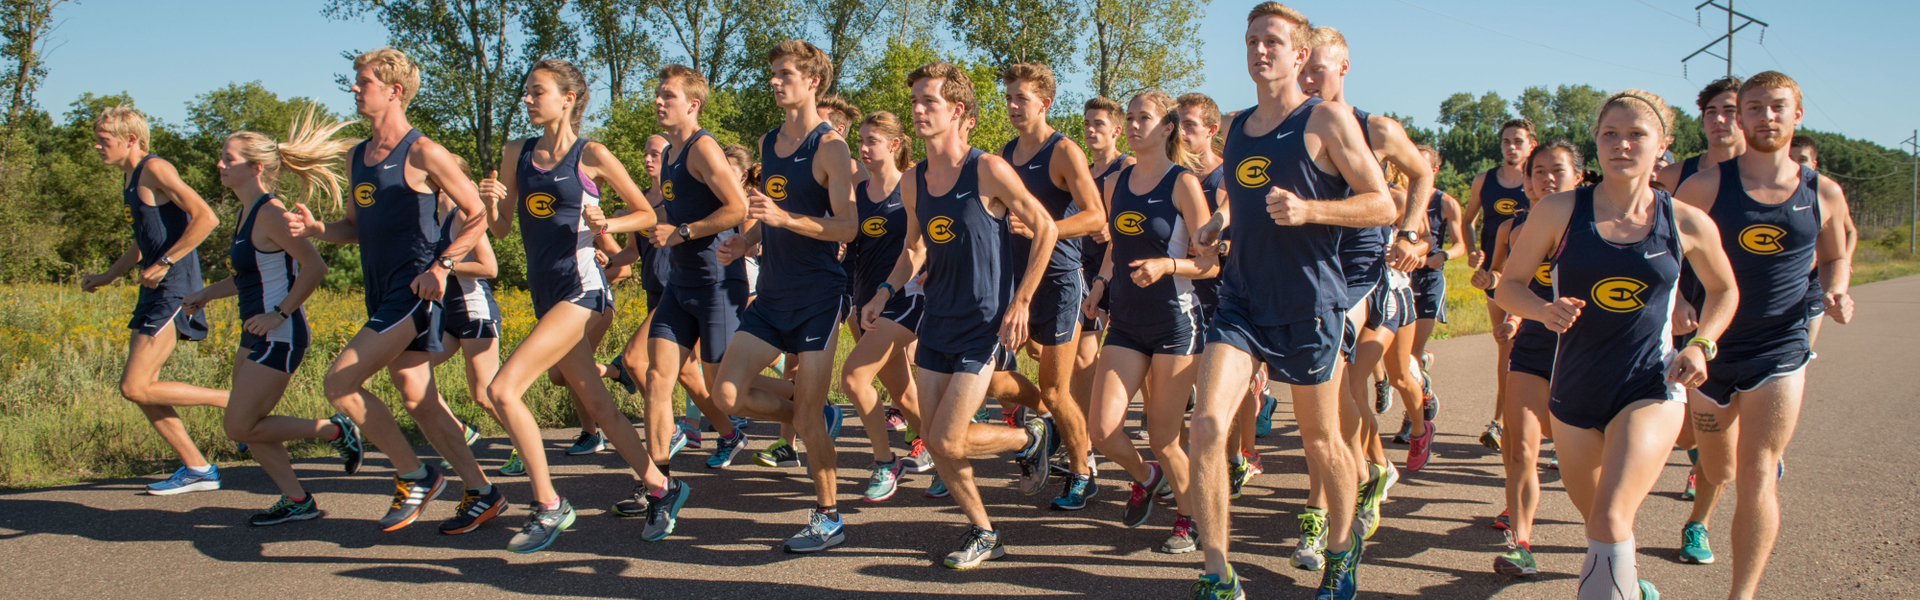 UWEC men's and women's cross country teams